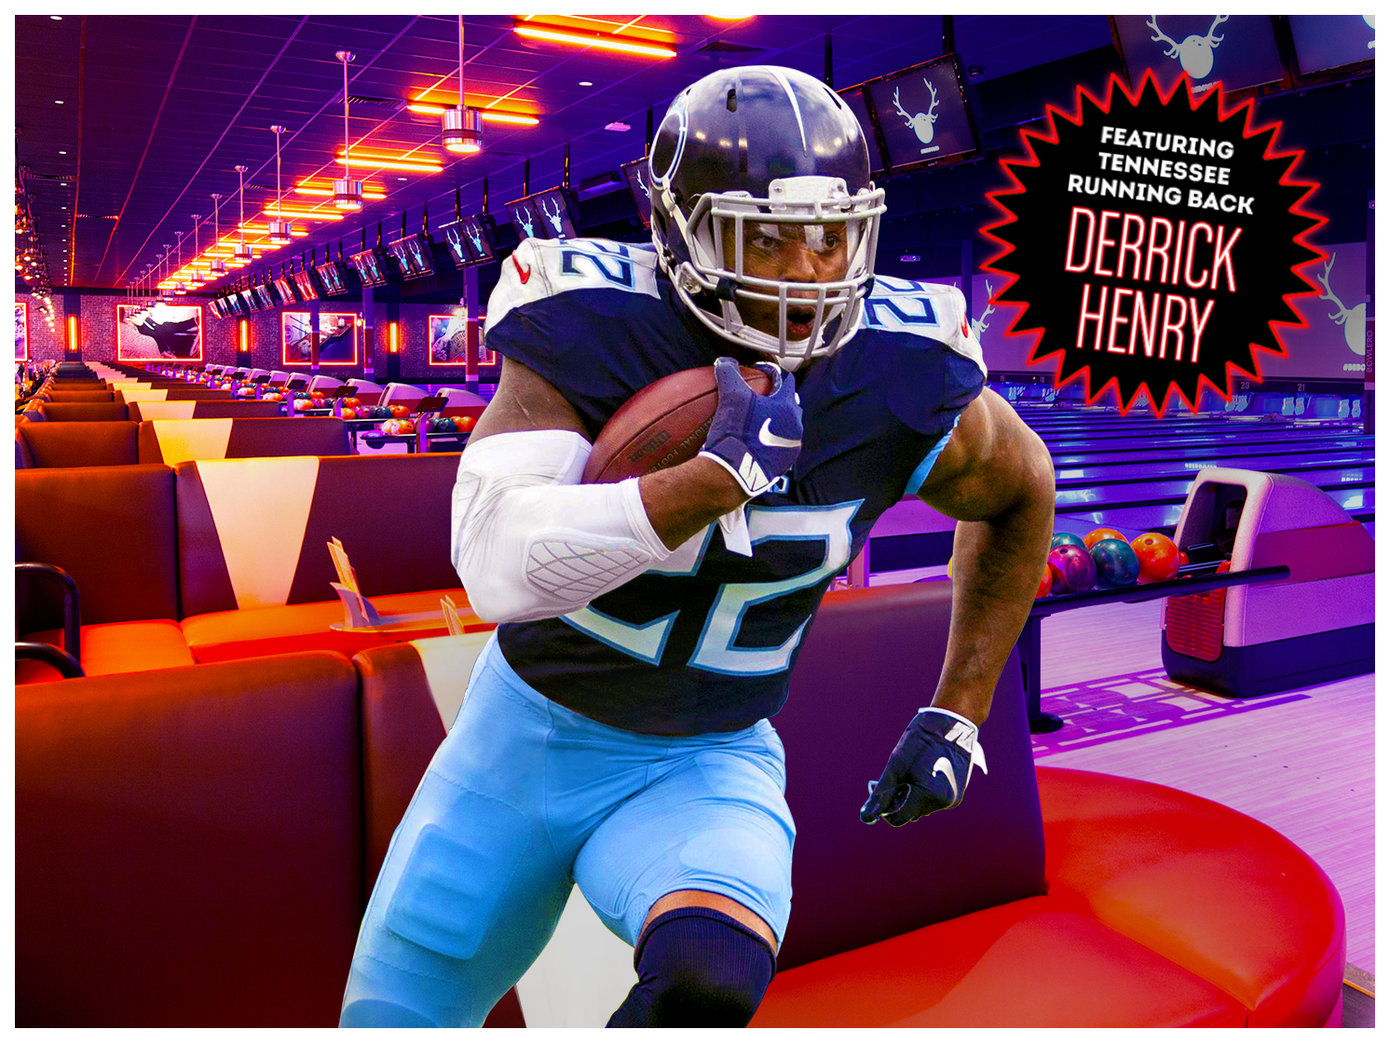 text: featuring tennessee running back derrick henry